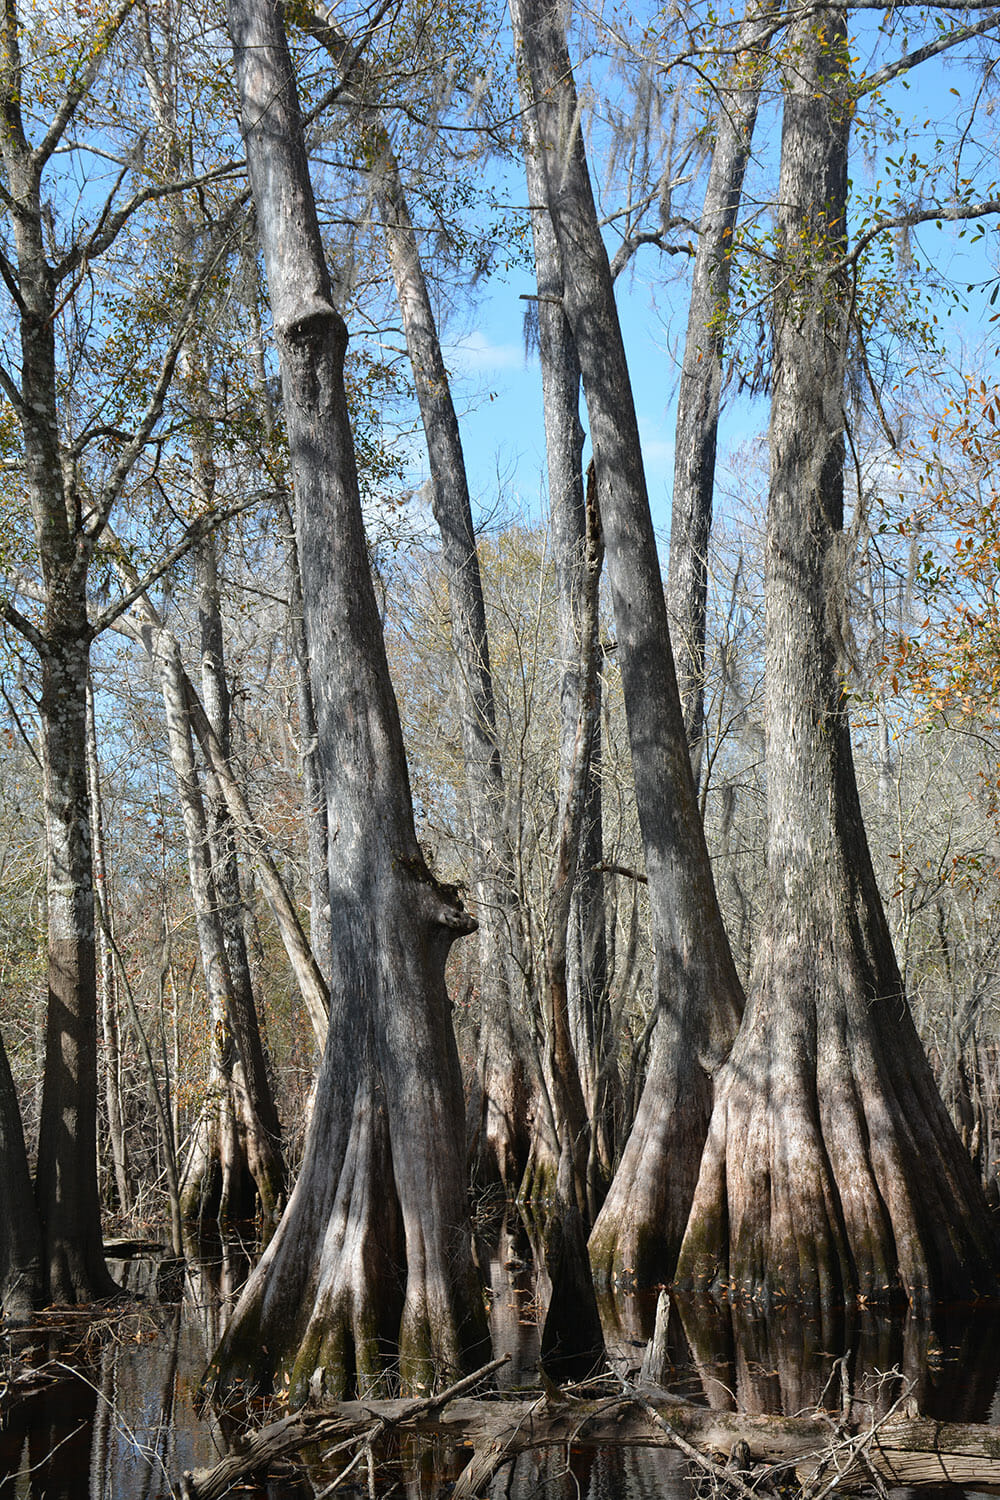 A pleasant ramble on bluffs above the Withlacoochee River, the Croom River Trail segment of the Florida Trail tunnels through oak hammocks and slips around cypress swamps along its 6.3-mile journey.